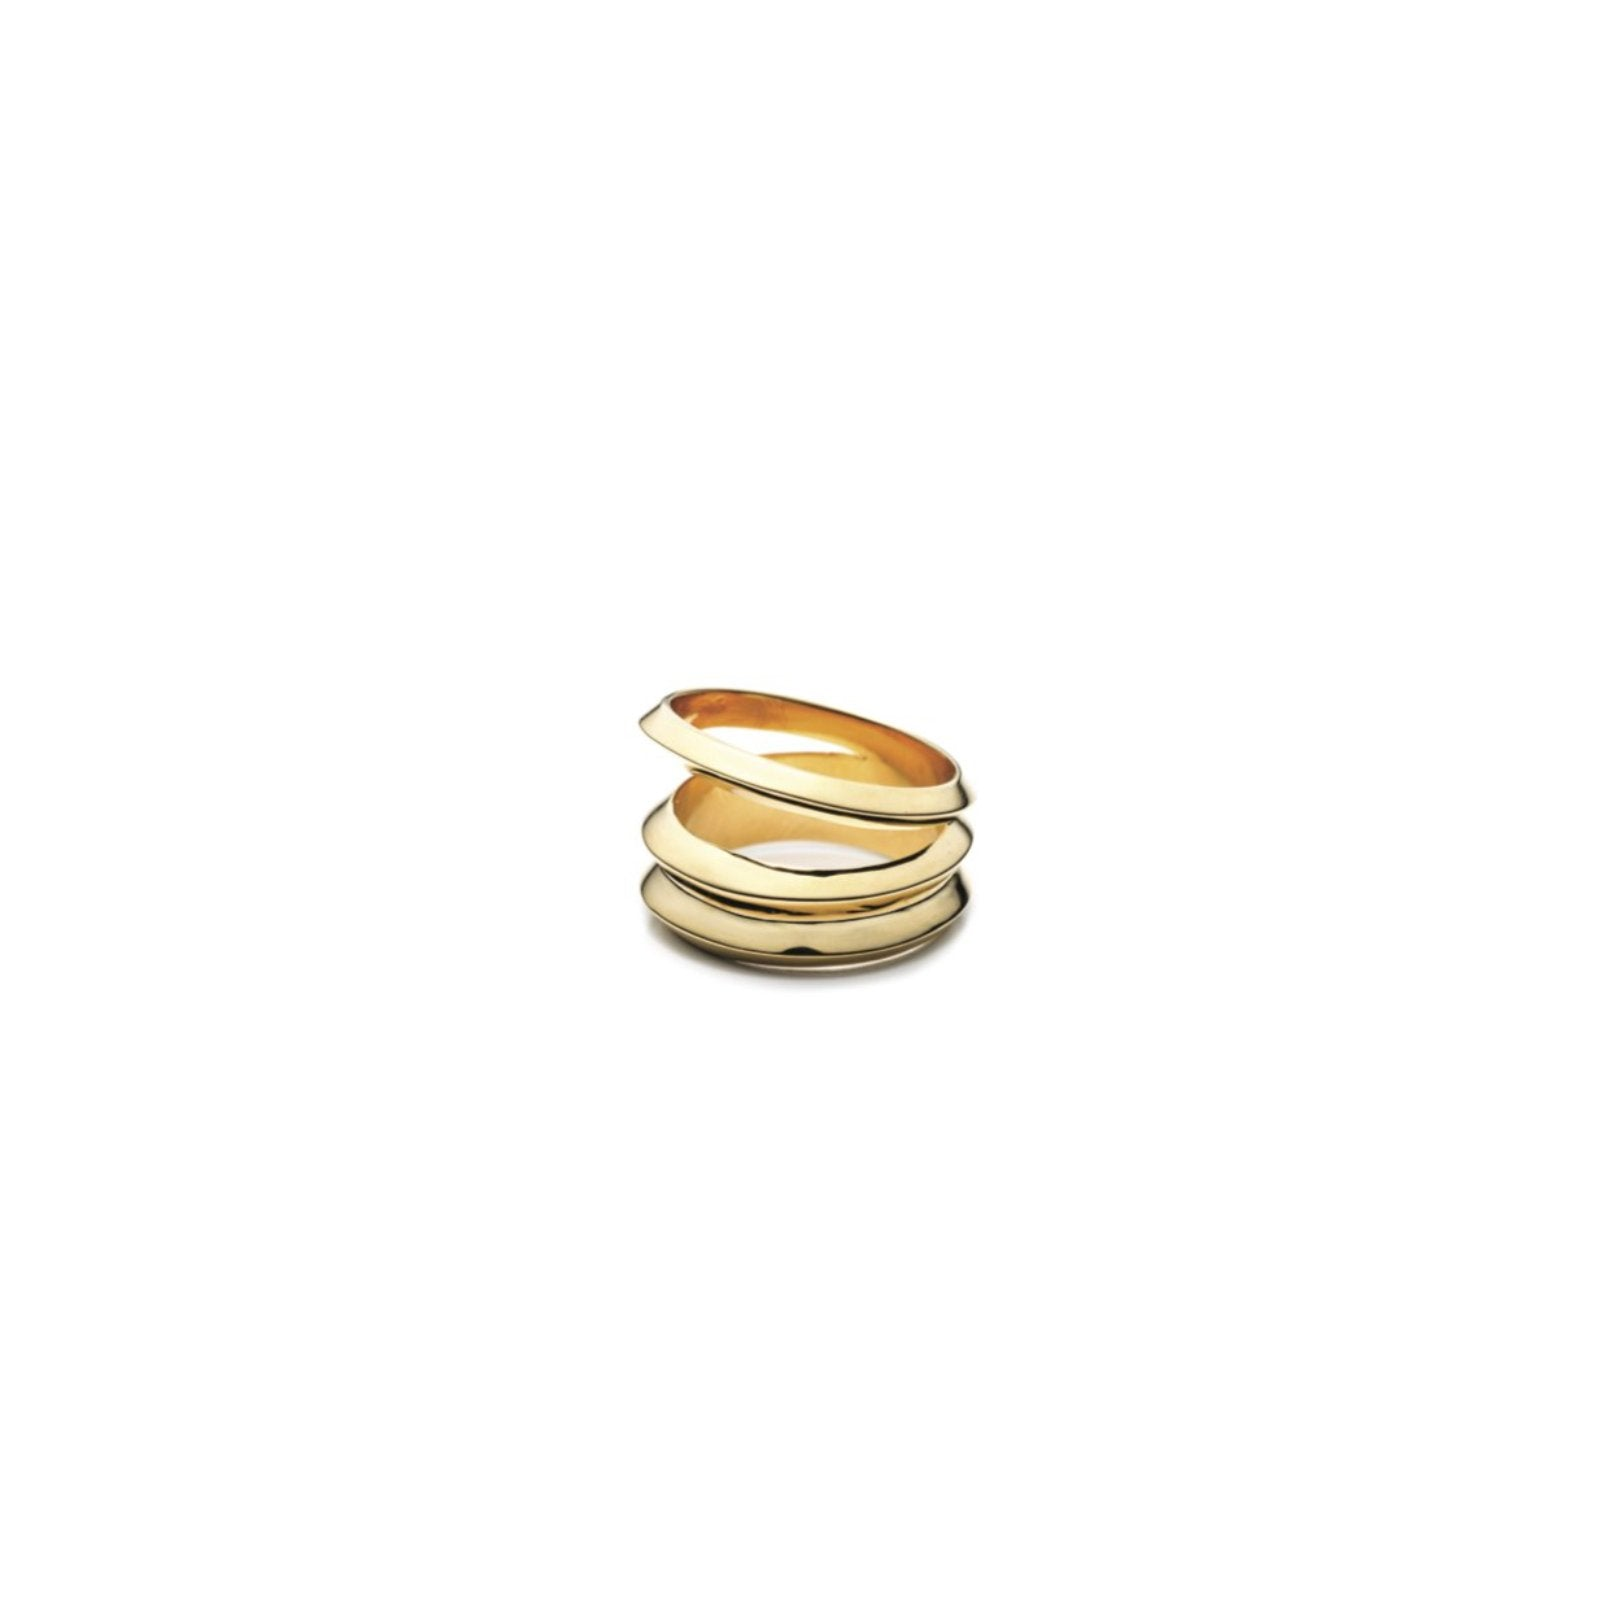 HEDRON THREE ROW KNUCKLE RING - 18K GOLD PLATED BRASS